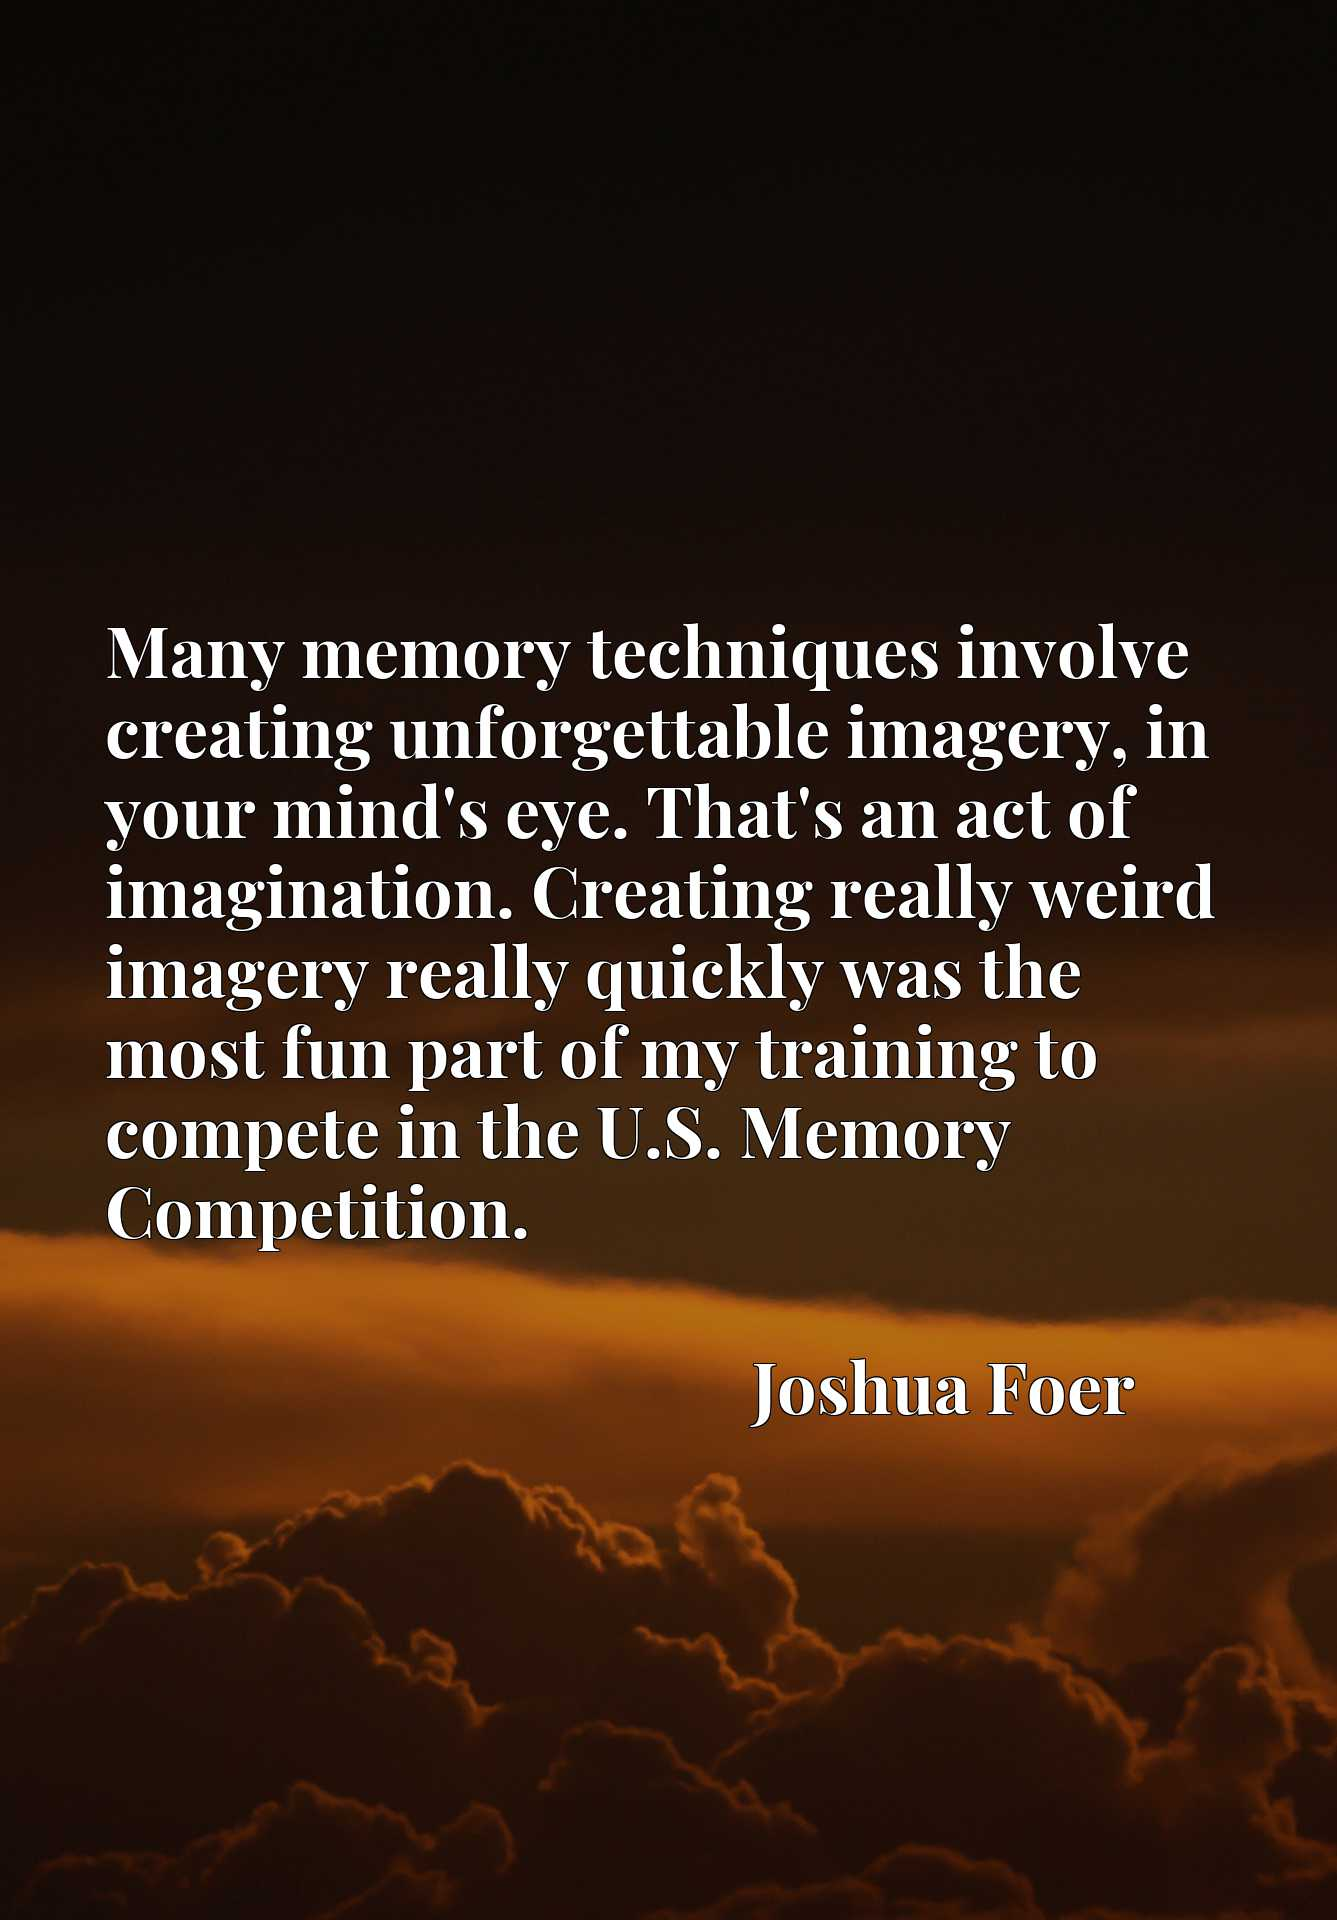 Many memory techniques involve creating unforgettable imagery, in your mind's eye. That's an act of imagination. Creating really weird imagery really quickly was the most fun part of my training to compete in the U.S. Memory Competition.